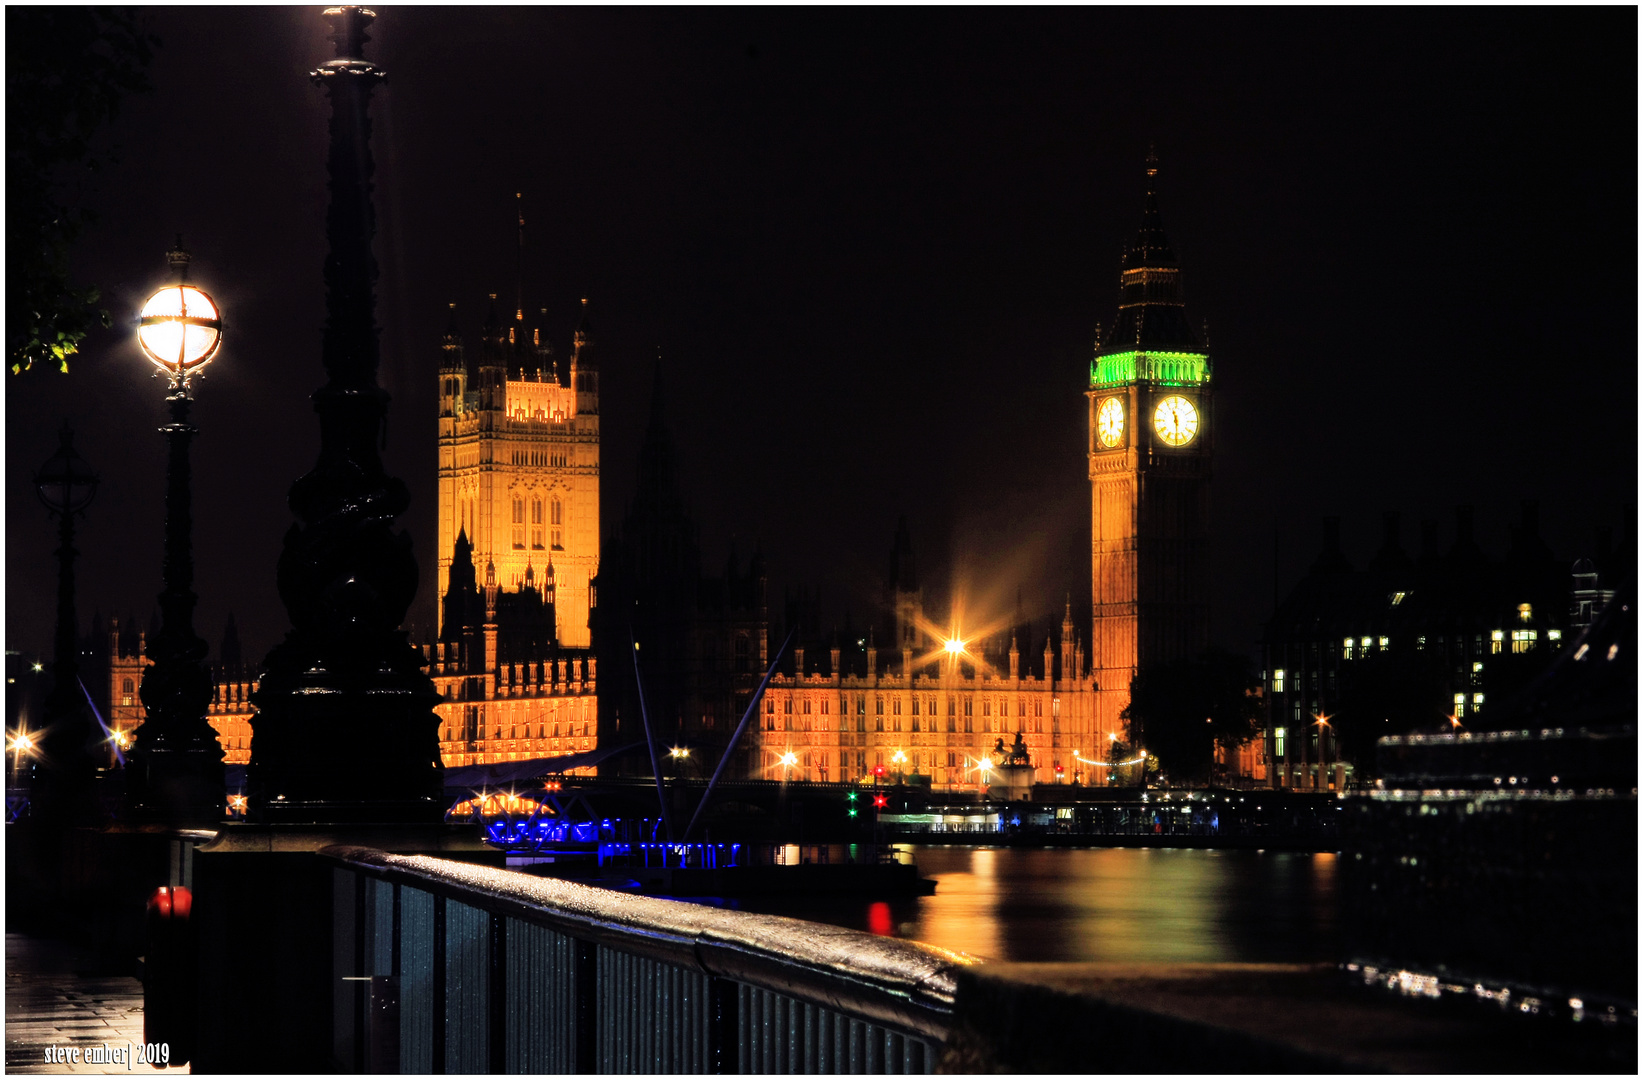 London by Night - View from The Queen's Walk